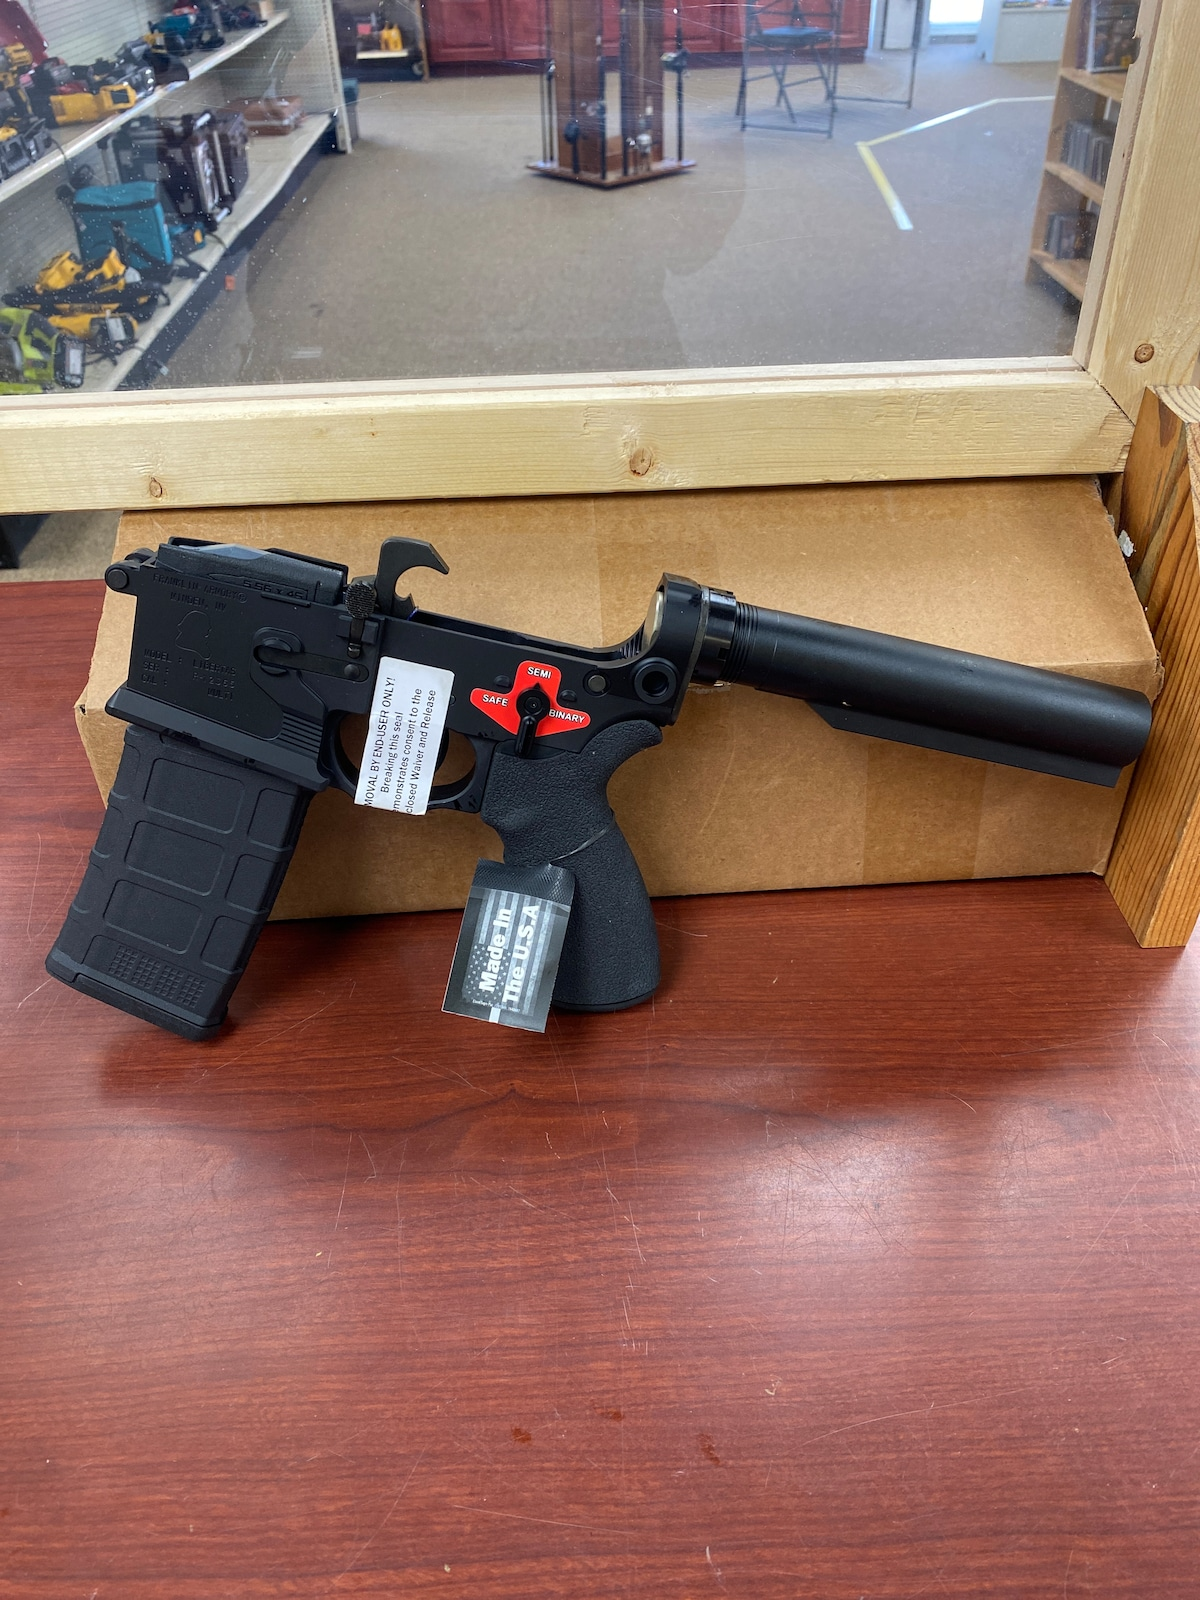 FRANKLIN ARMORY BFSIII Equipped Libertas BLR 2032-BLK